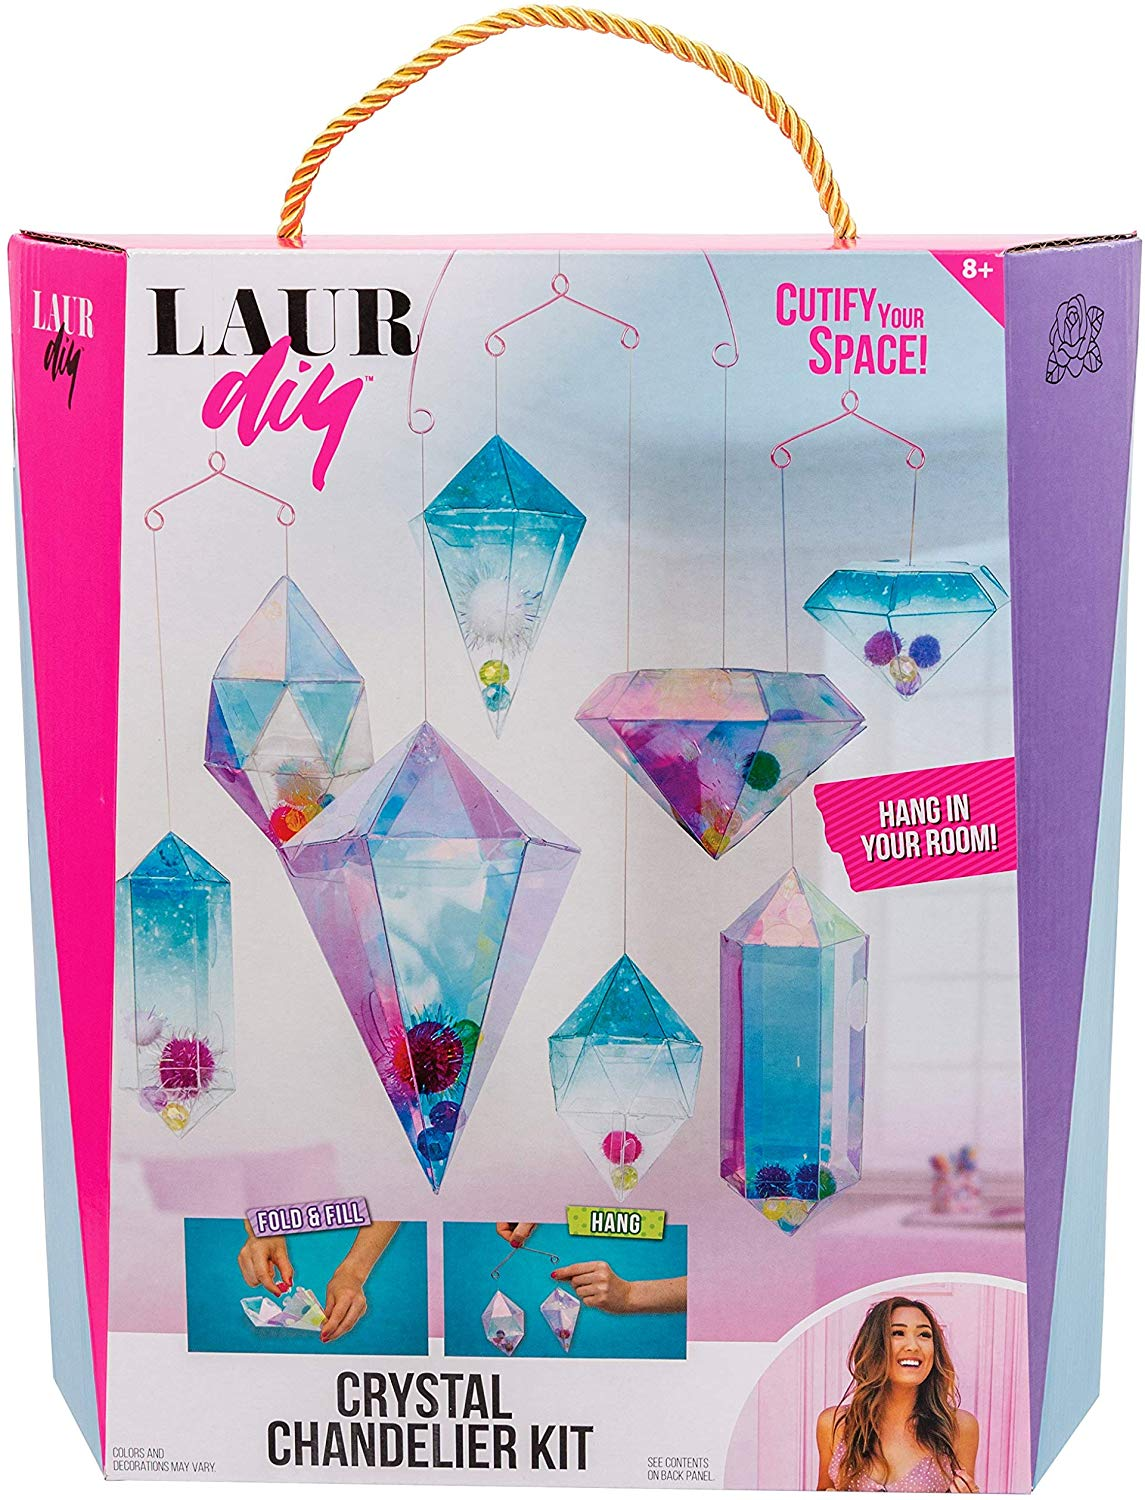 """Rose Art LaurDIY Crystal Chandelier Kit Introducing LaurDIY craft kits inspired by Lauren riihimaki's crafty tutorials, life hacks, and room decor ideas on YouTube. Now you can bring her style home with the LaurDIY crystal chandelier kit! At-home designers fold eight shapes to construct the hanging """"crystals"""", decorate them with pom poms and beads, then connect the crystals to form an incredible, iridescent, chandelier. This comprehensive kit includes 8 crystal shapes, 5 hangers, 40 pom poms, 32 iridescent beads, nylon string, a clip and connecting link, and an easy-to-follow guide with step-by-step instructions and images."""